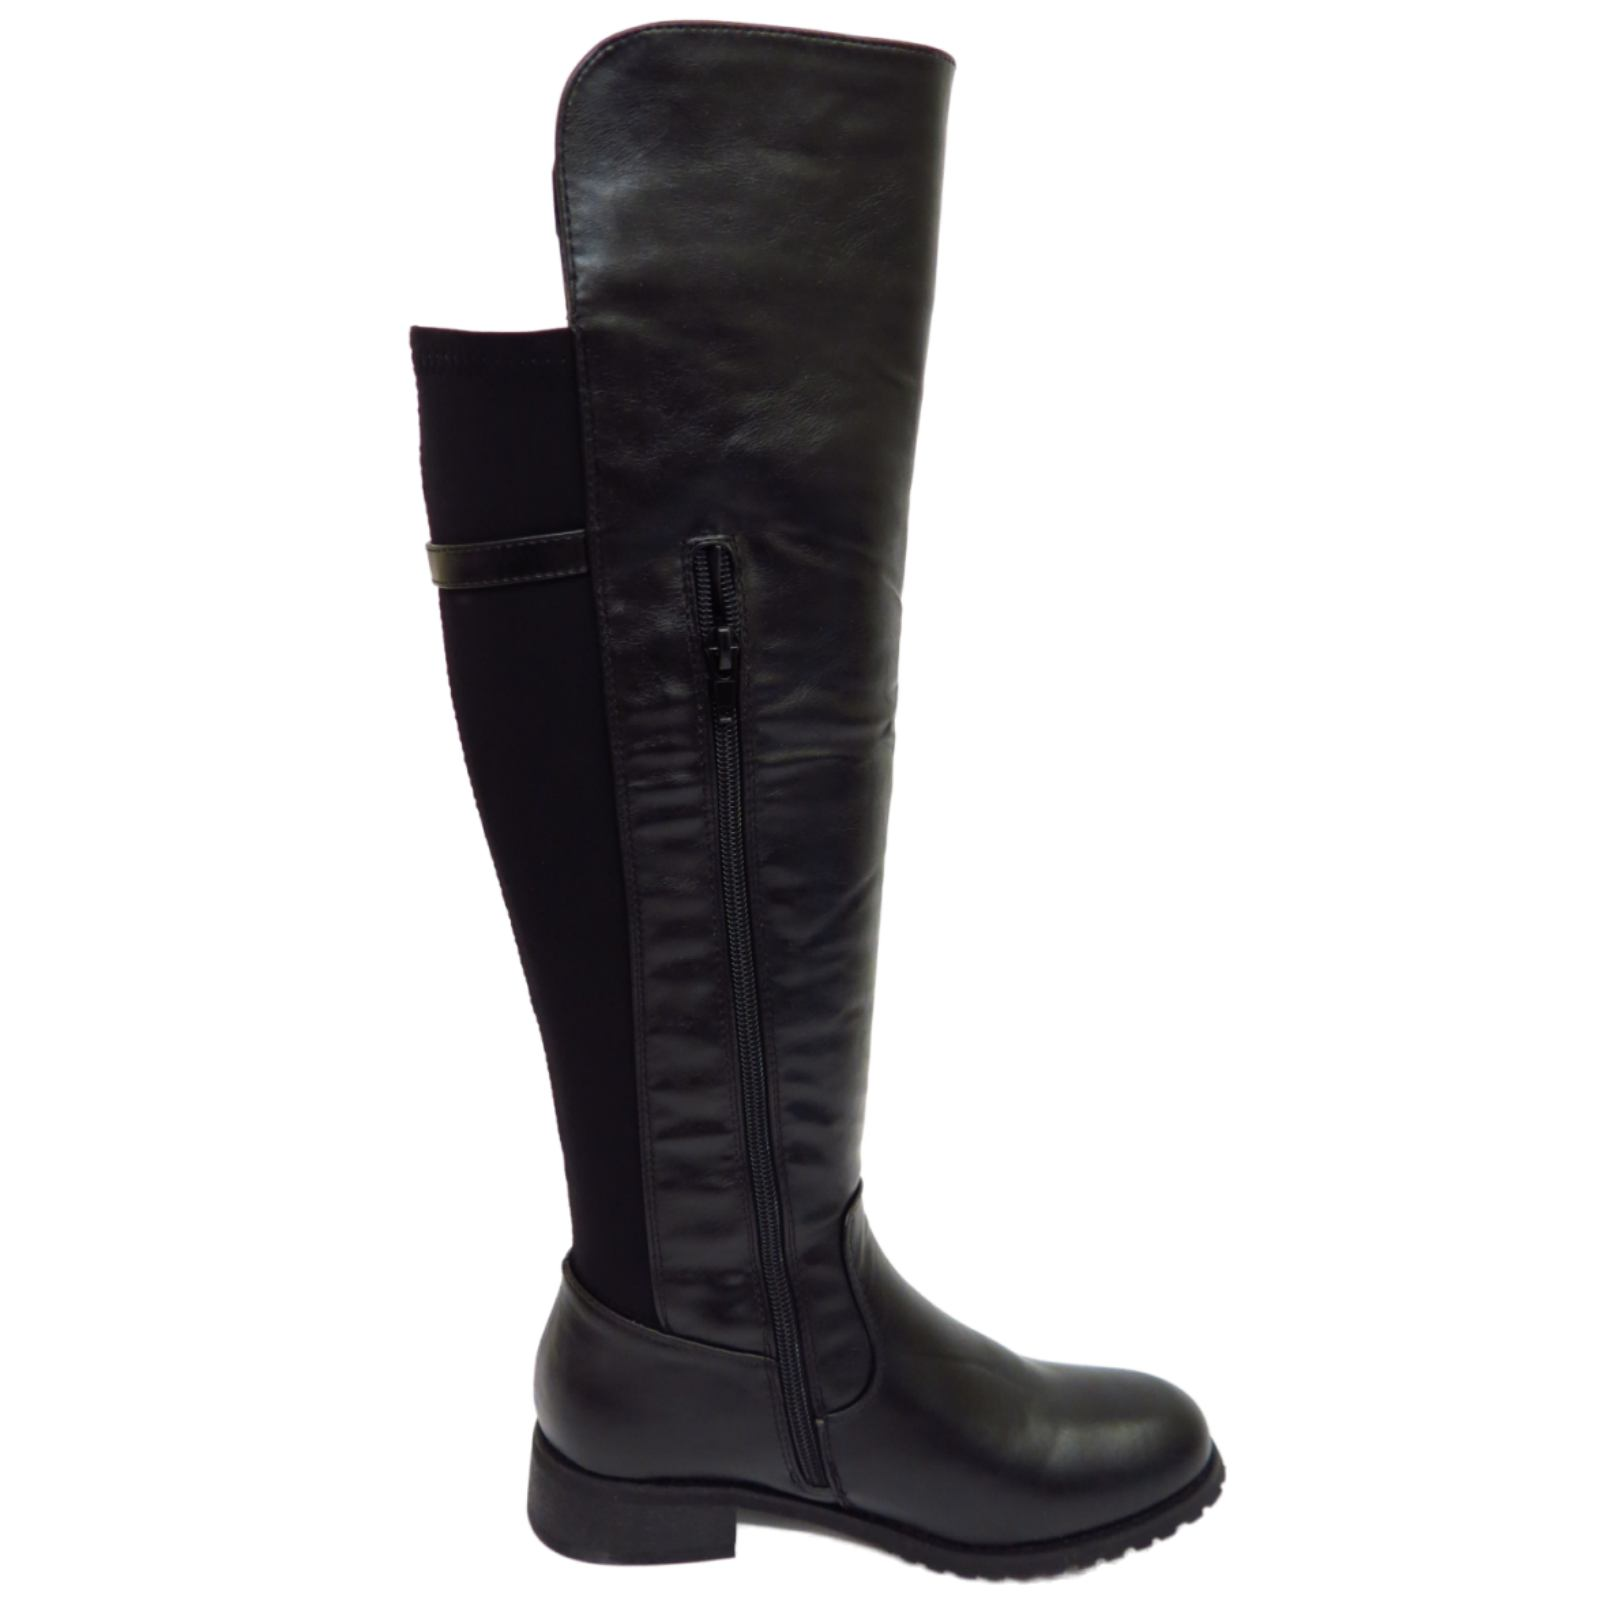 dolcis flat black knee high zip up calf